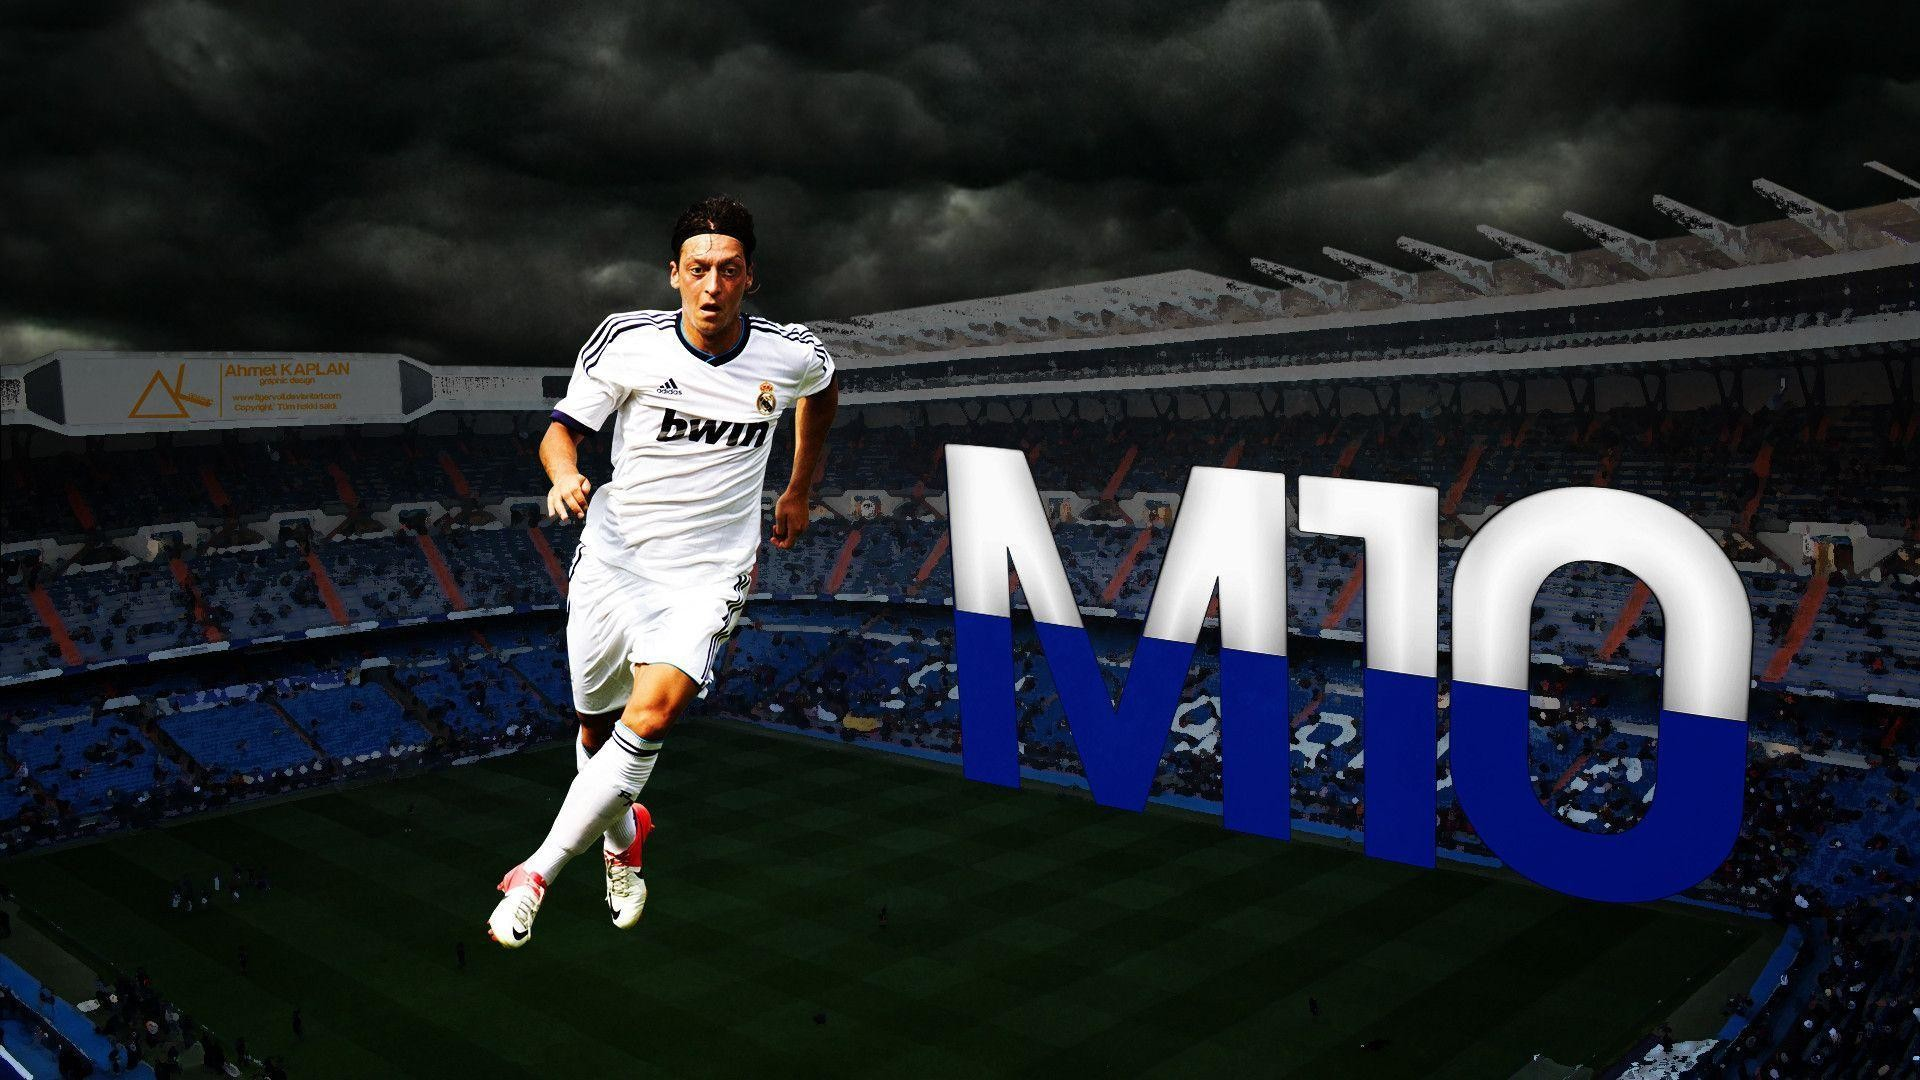 Mesut Ozil 15 2016 Wallpaper By Designer Alateewish On: Ozil Wallpaper (80+ Images